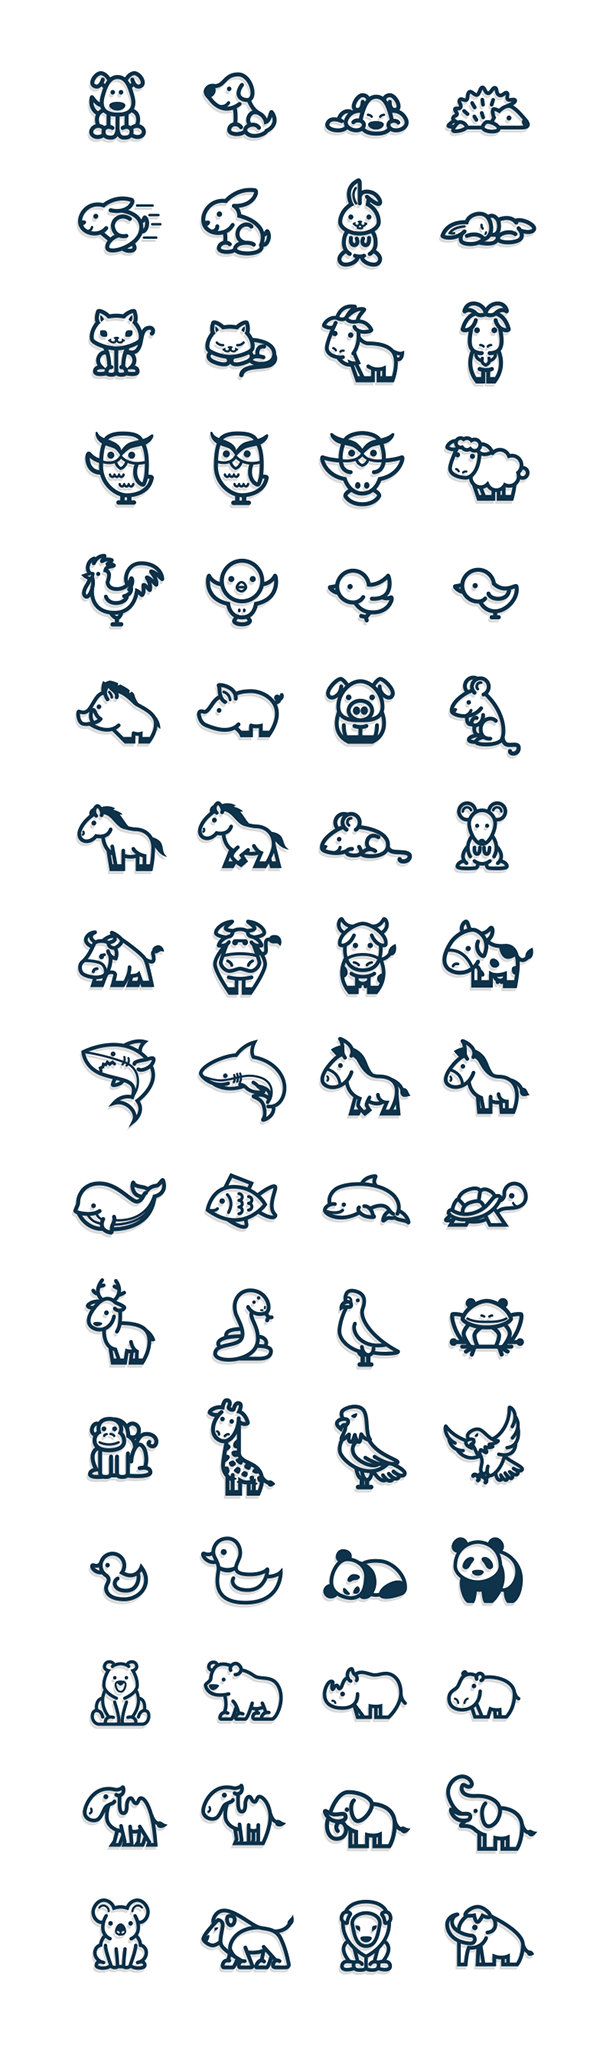 Drawing bands simple. Cute and vectorial animal